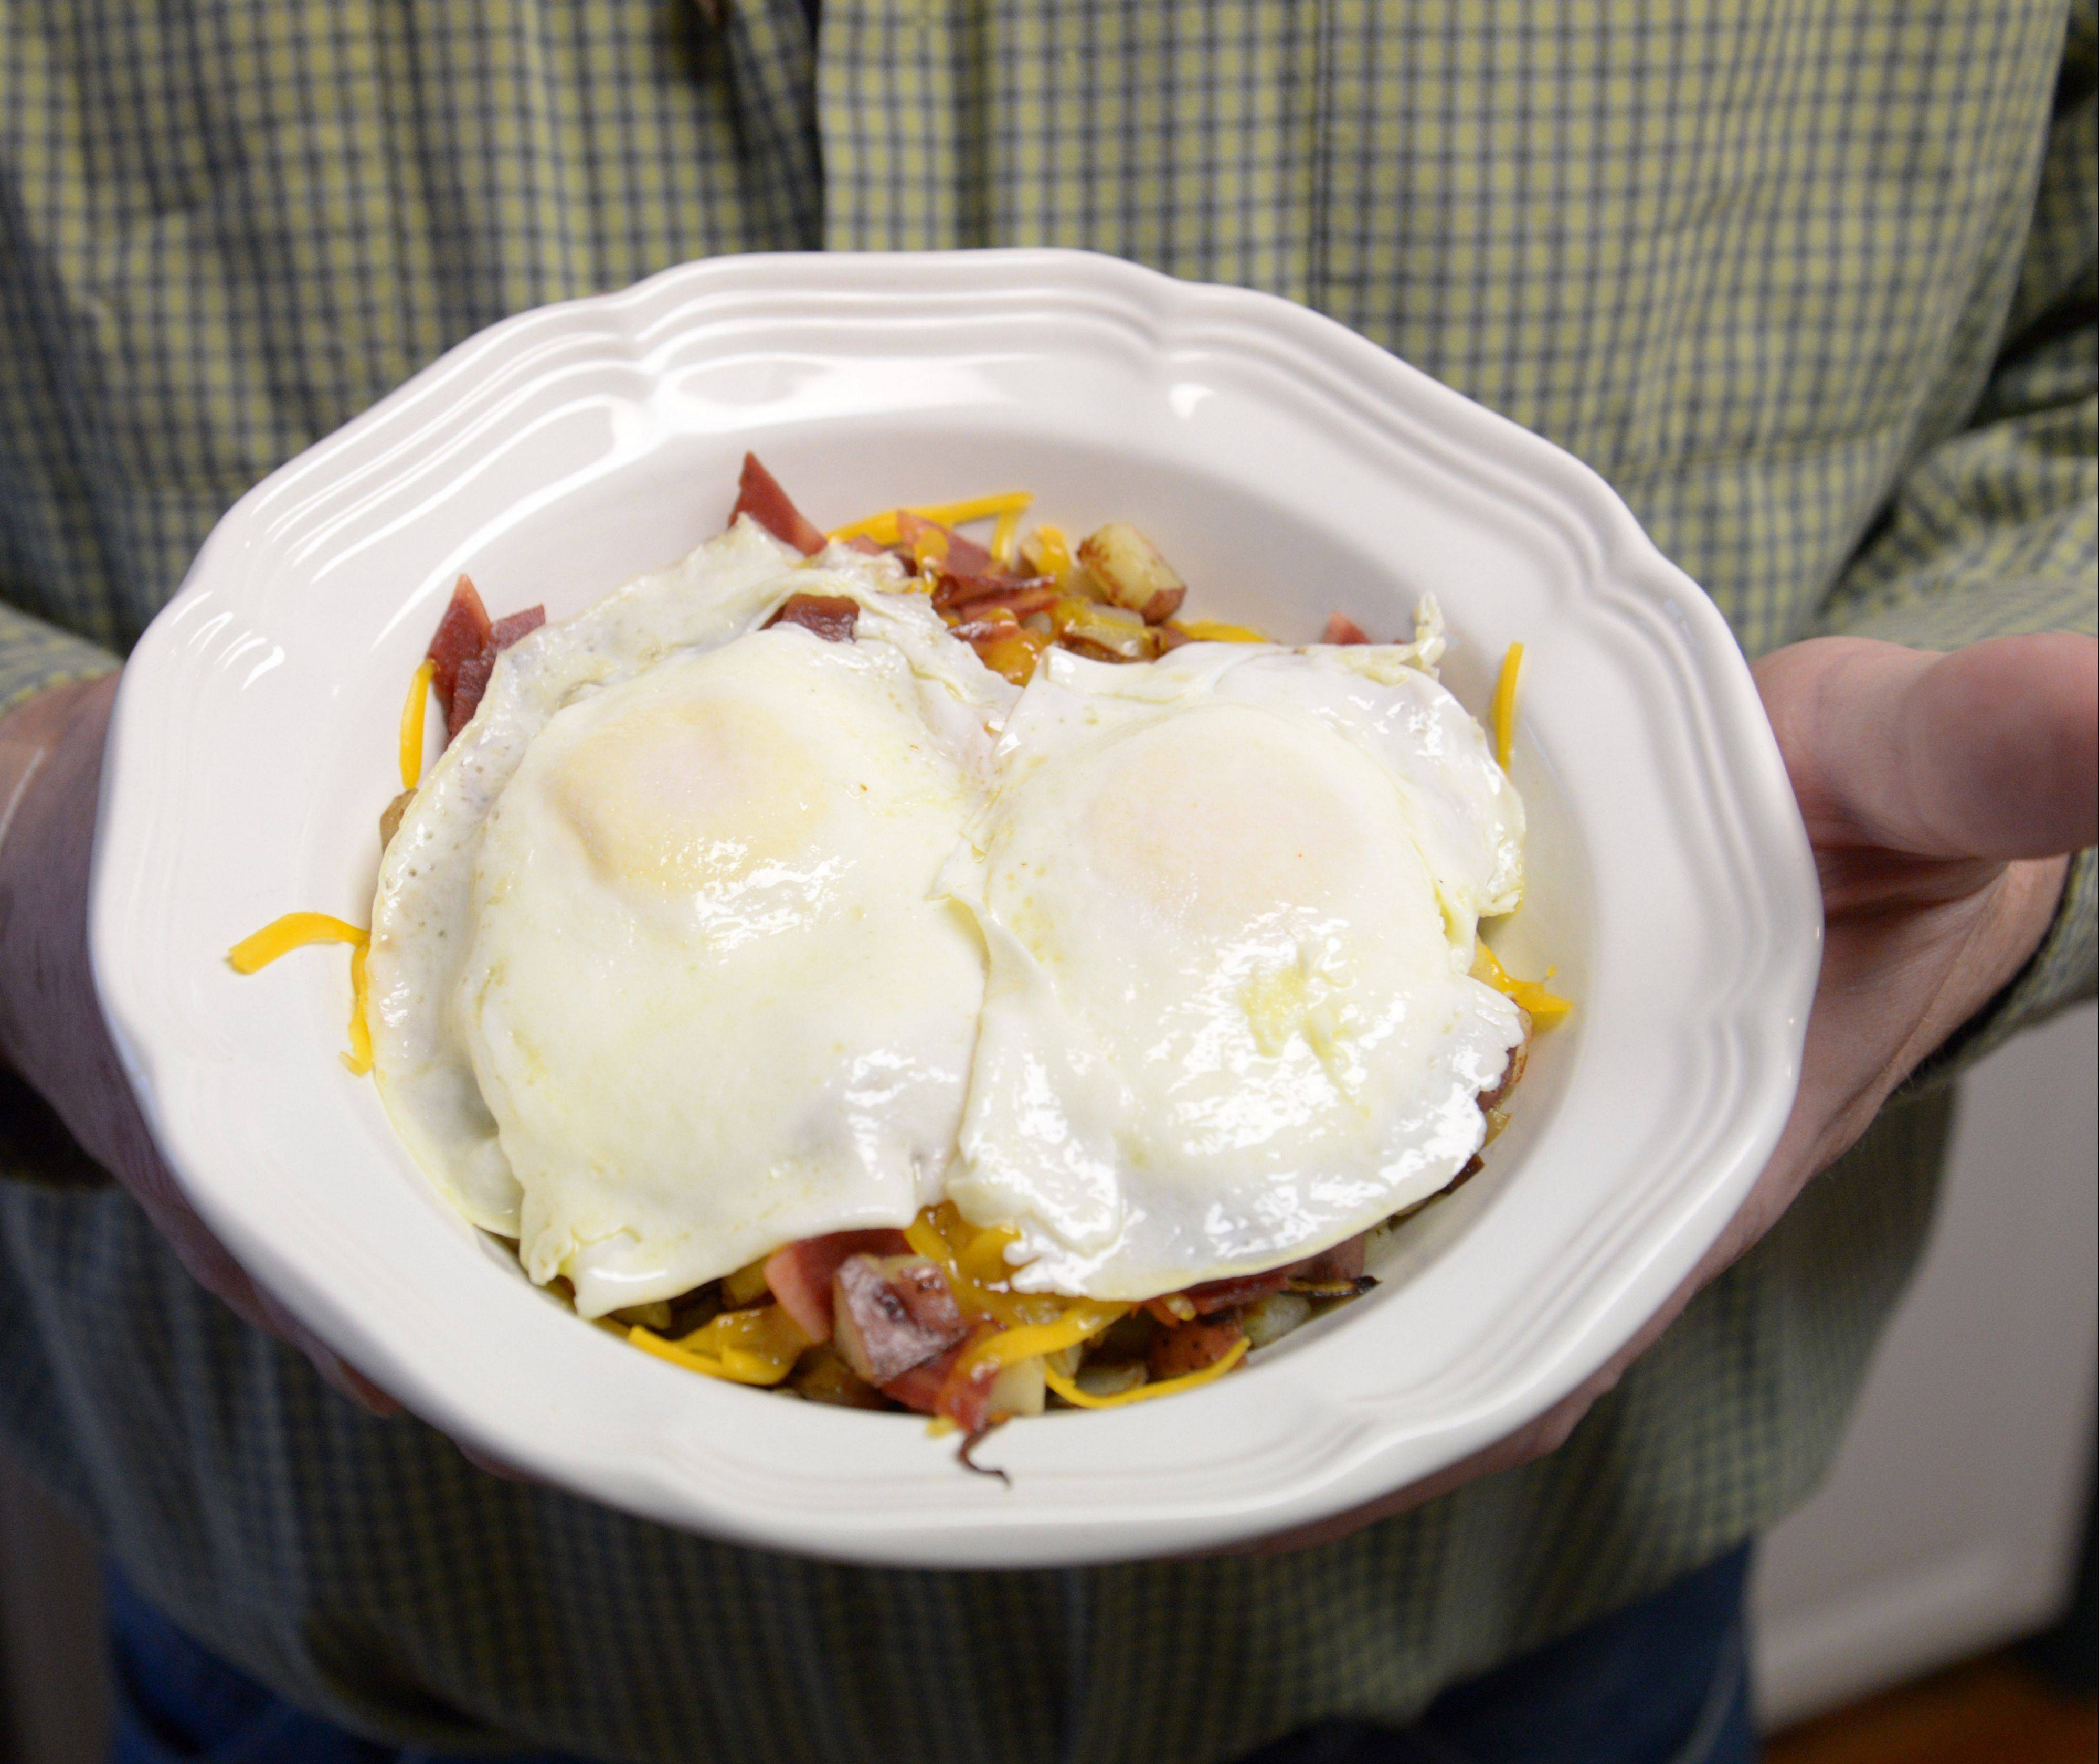 Made-to-order eggs top Tim Sullivan's skillet breakfast.